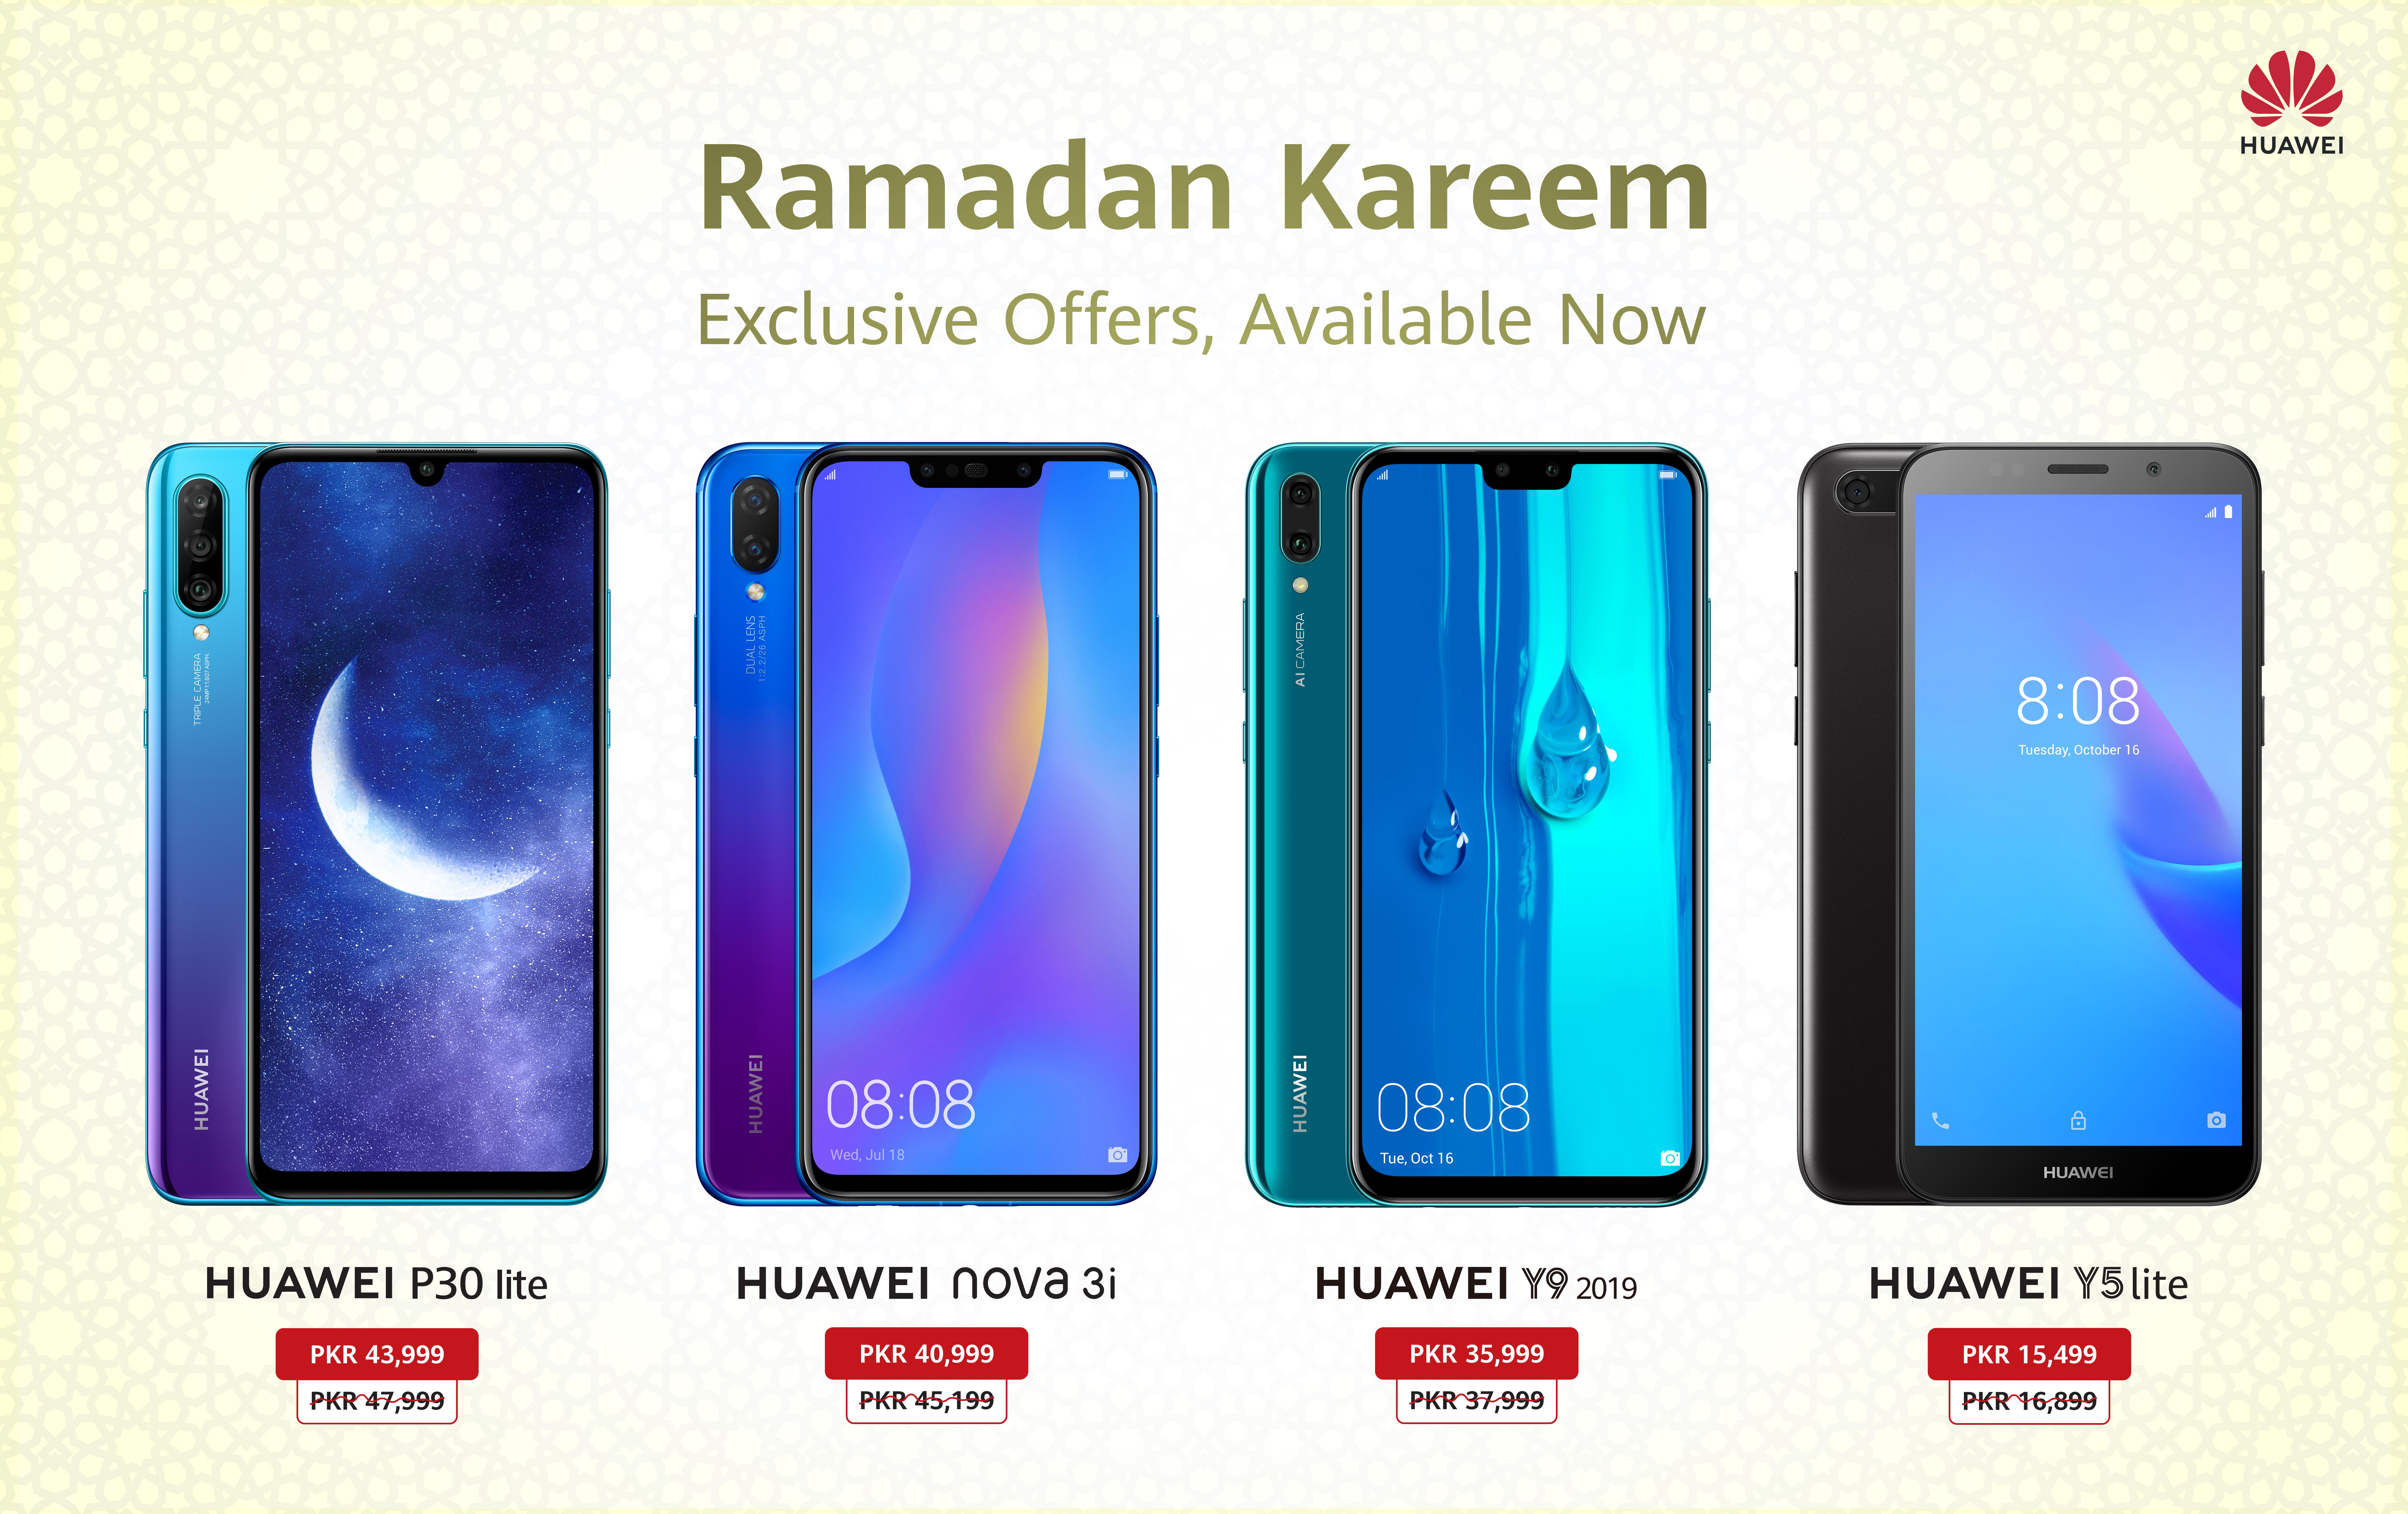 [Key Visual] (FV) - Ramadan offer Discounts - English